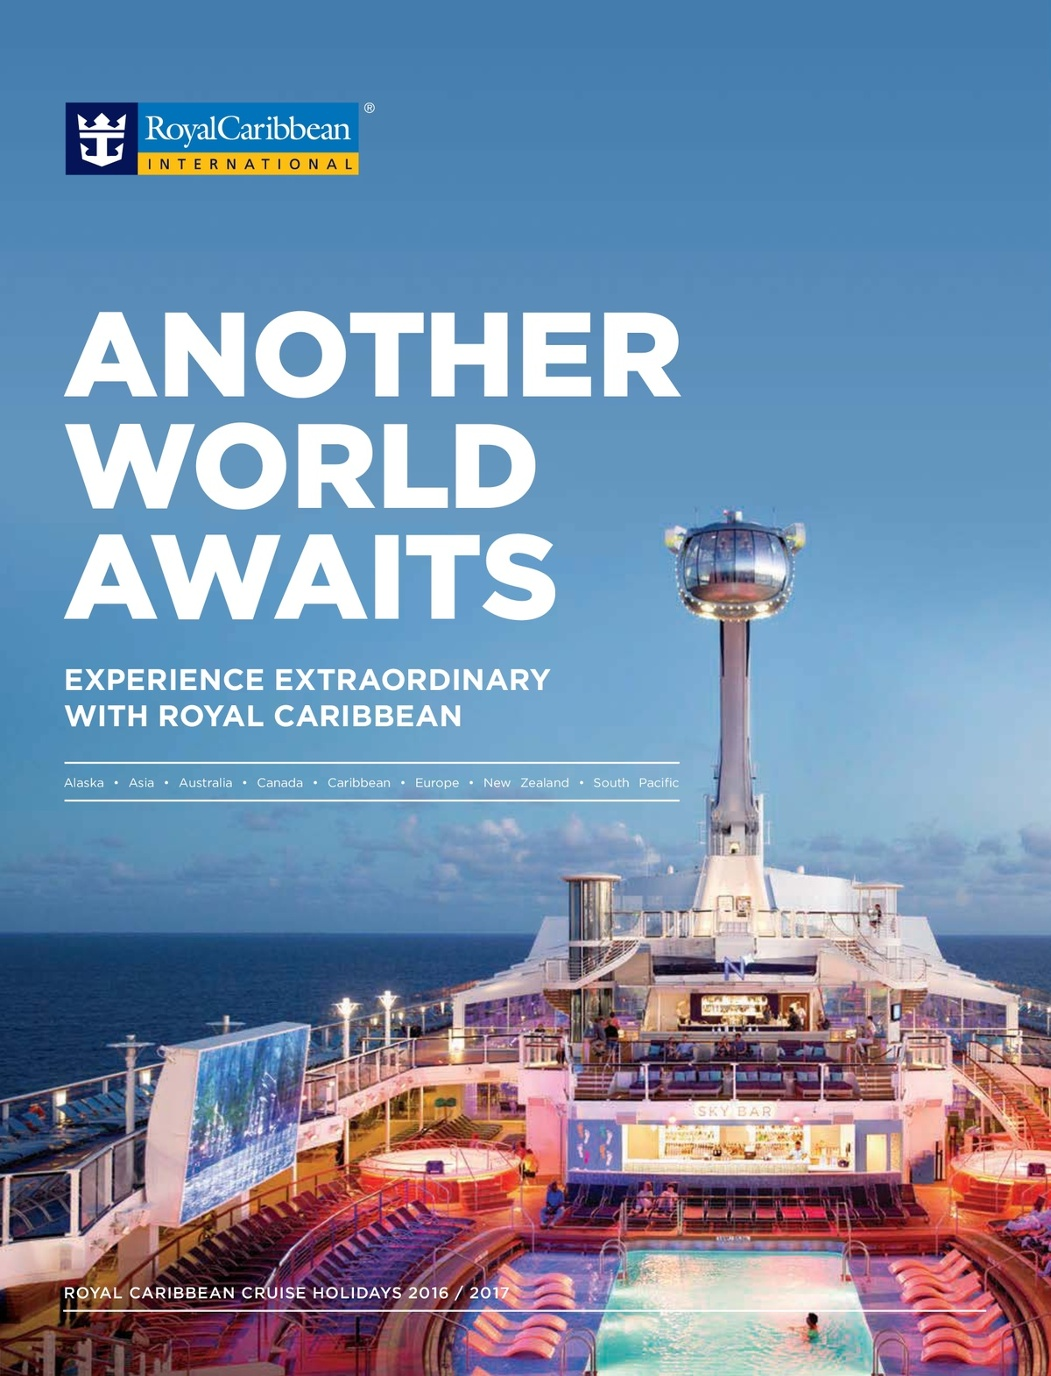 Royal Caribbean Worldwide holidays 2016-2017, 2nd edition